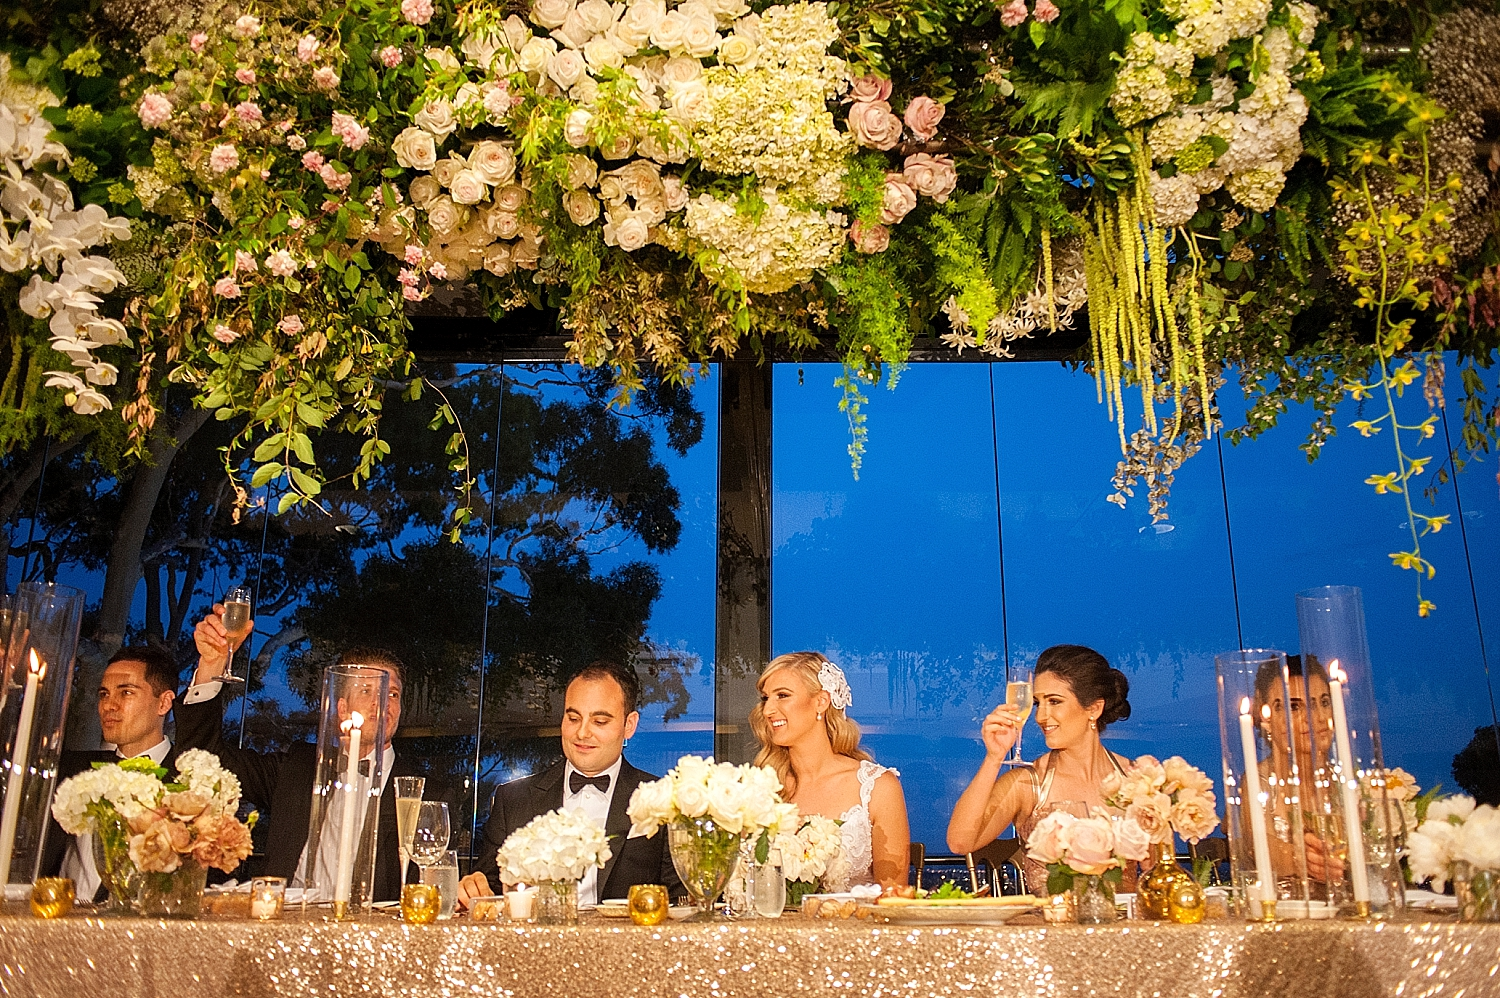 73_hanging floral installation over bridal table wedding perth.jpg